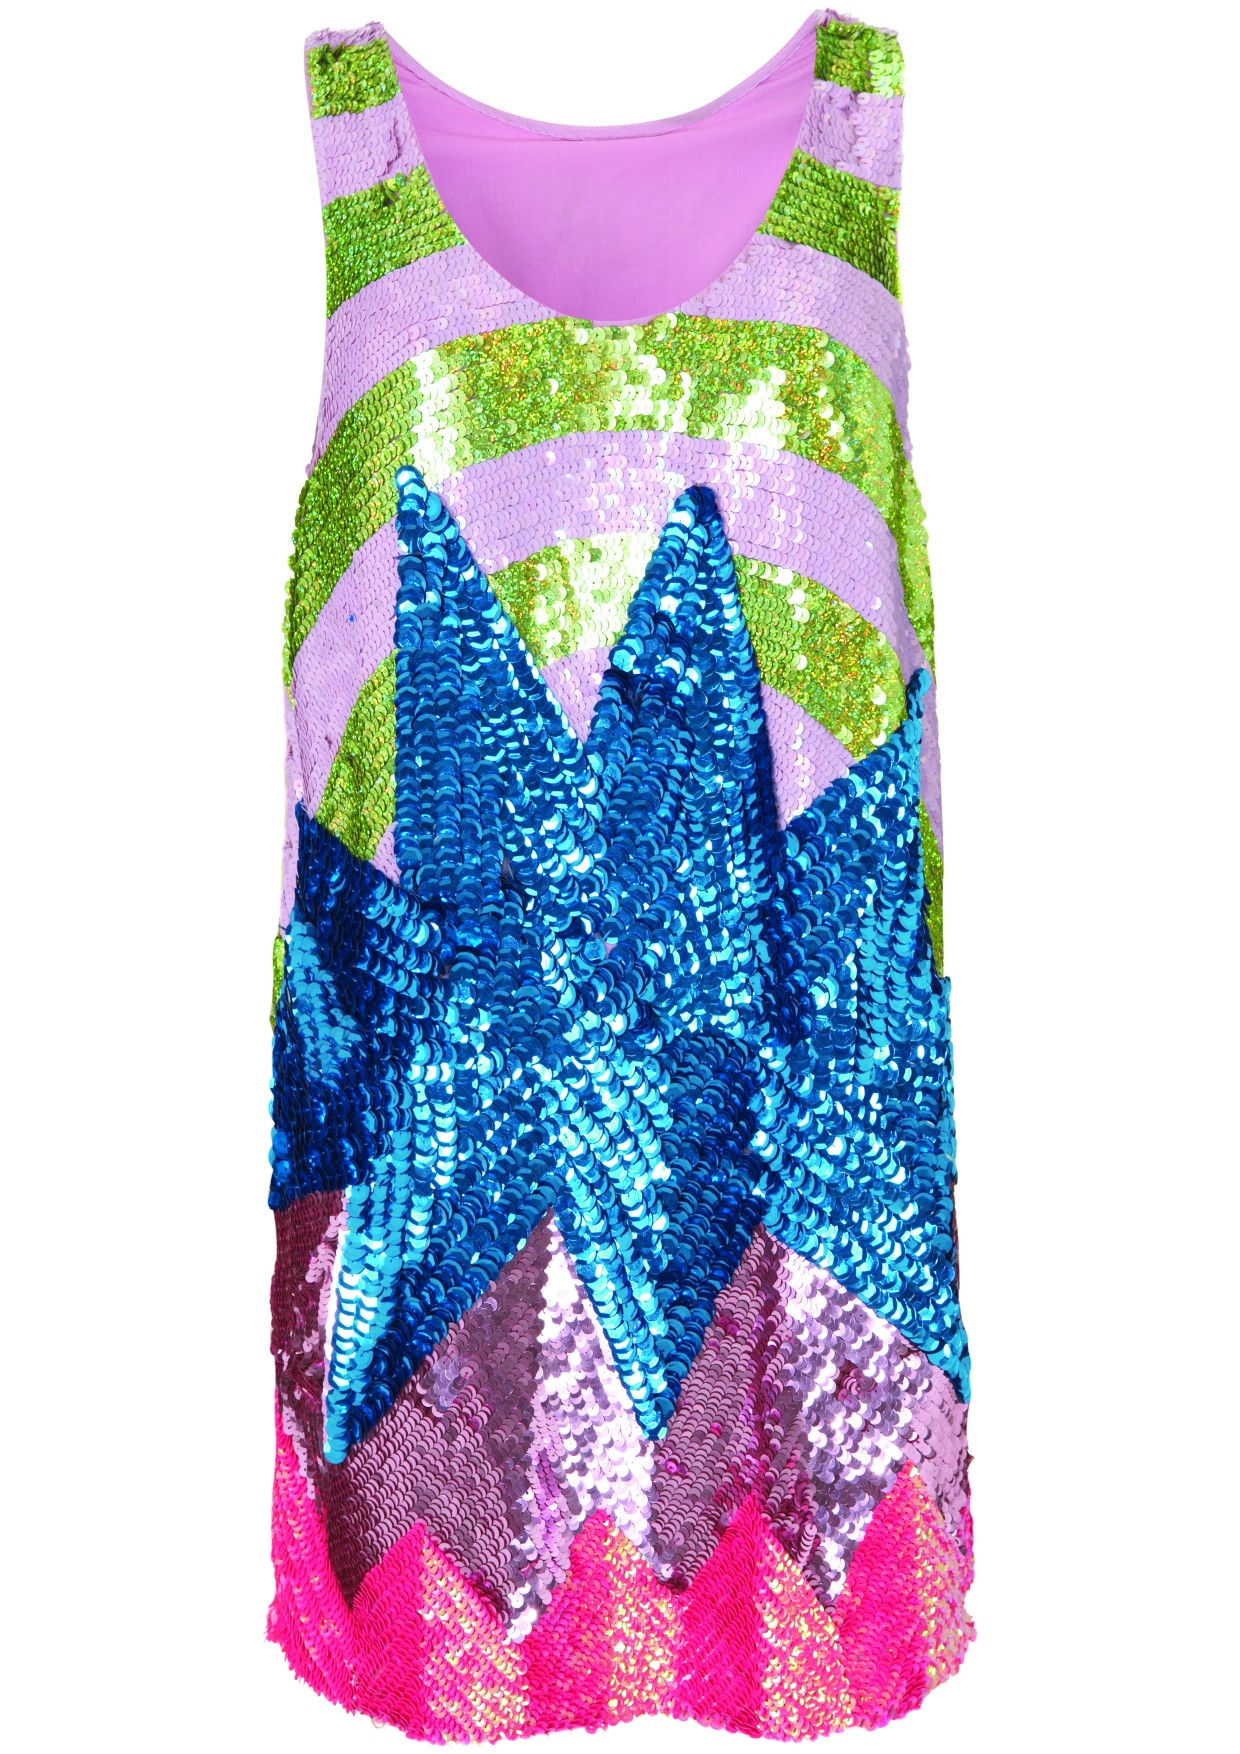 sequin pink and blue hortdress from Topshop